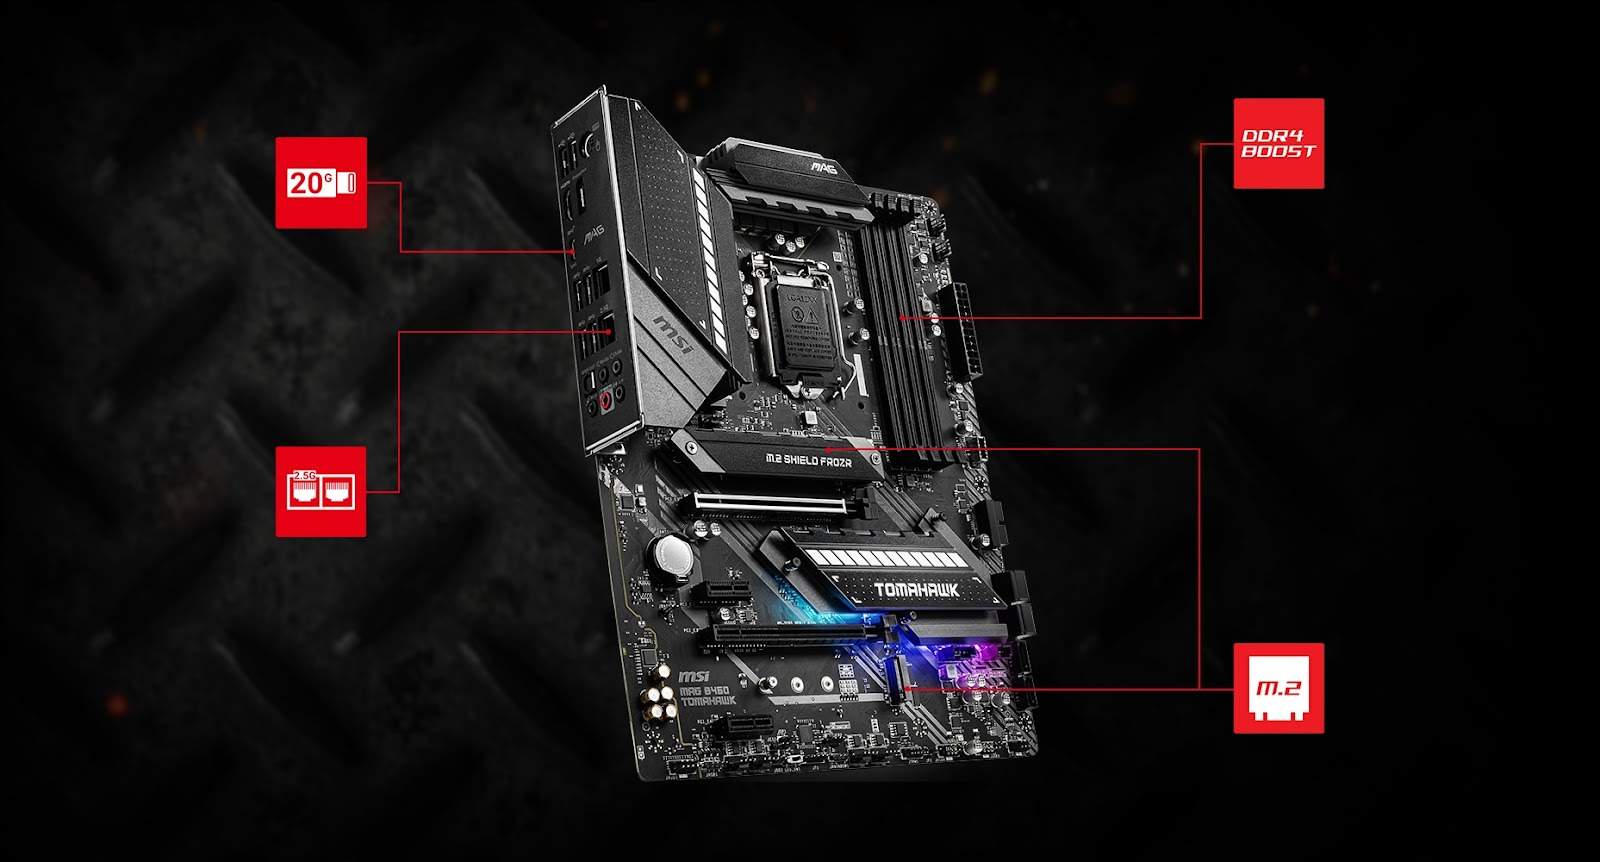 Creator B460 motherboard and a video card